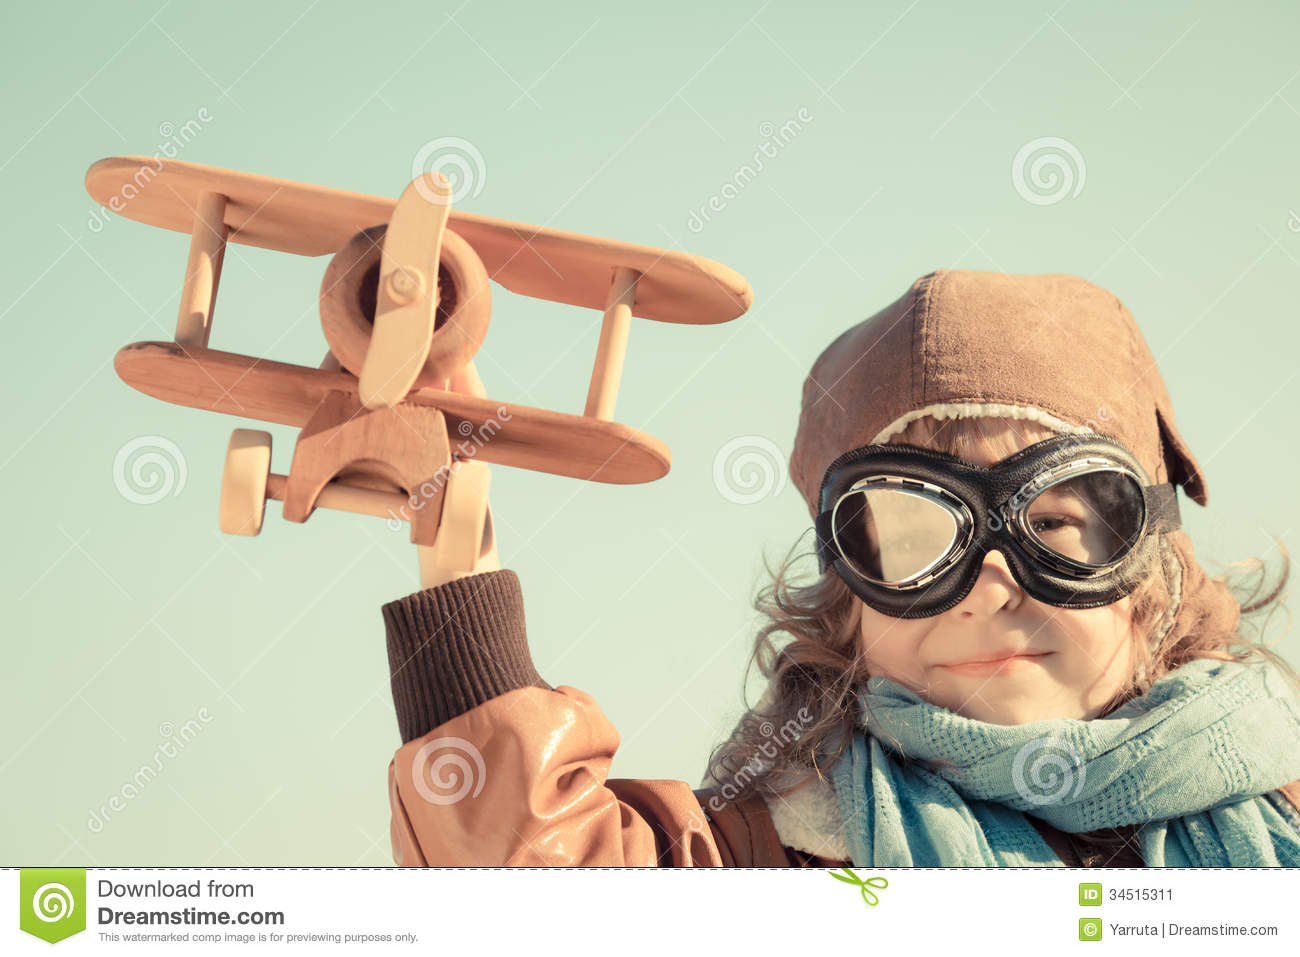 Happy Kid Playing With Toy Airplane Stock Image - Image: 34515311